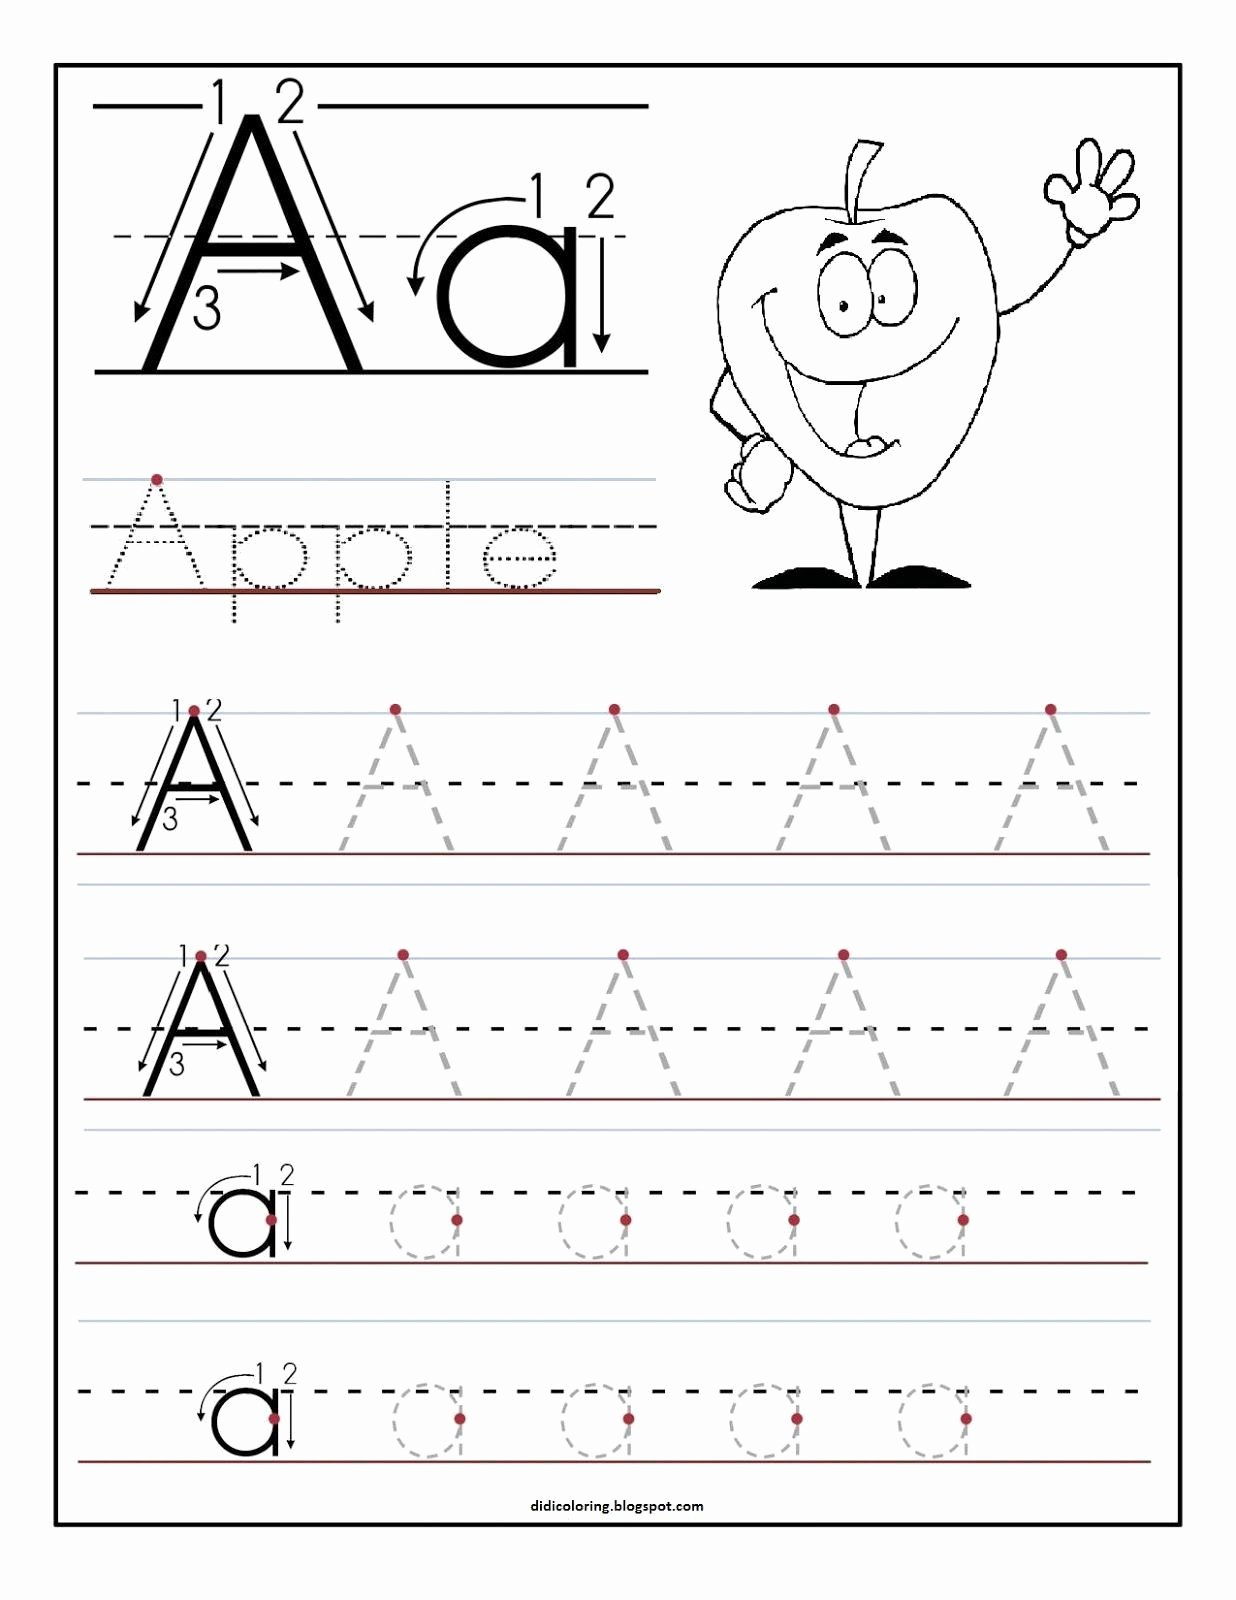 Free Printable Letter A Worksheets for Preschoolers Printable 16 Learning to Write Letters Free Printables